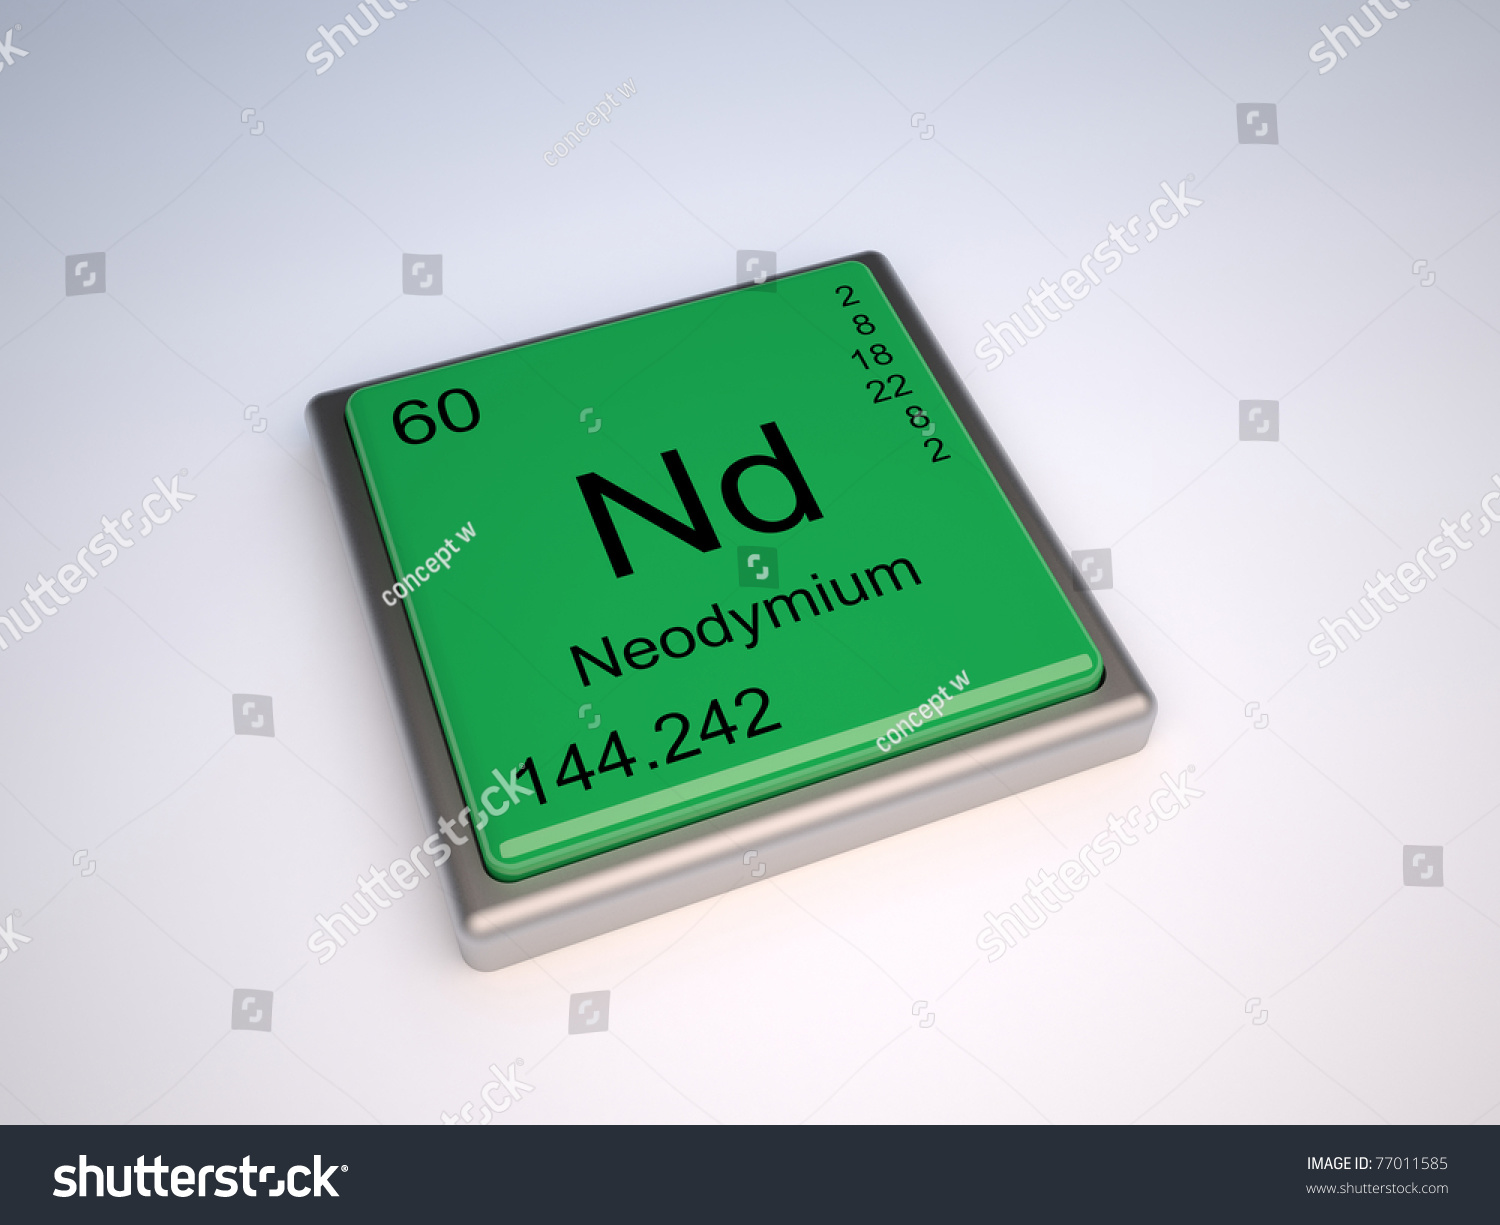 Neodymium chemical element periodic table symbol stock neodymium chemical element of the periodic table with symbol nd gamestrikefo Gallery